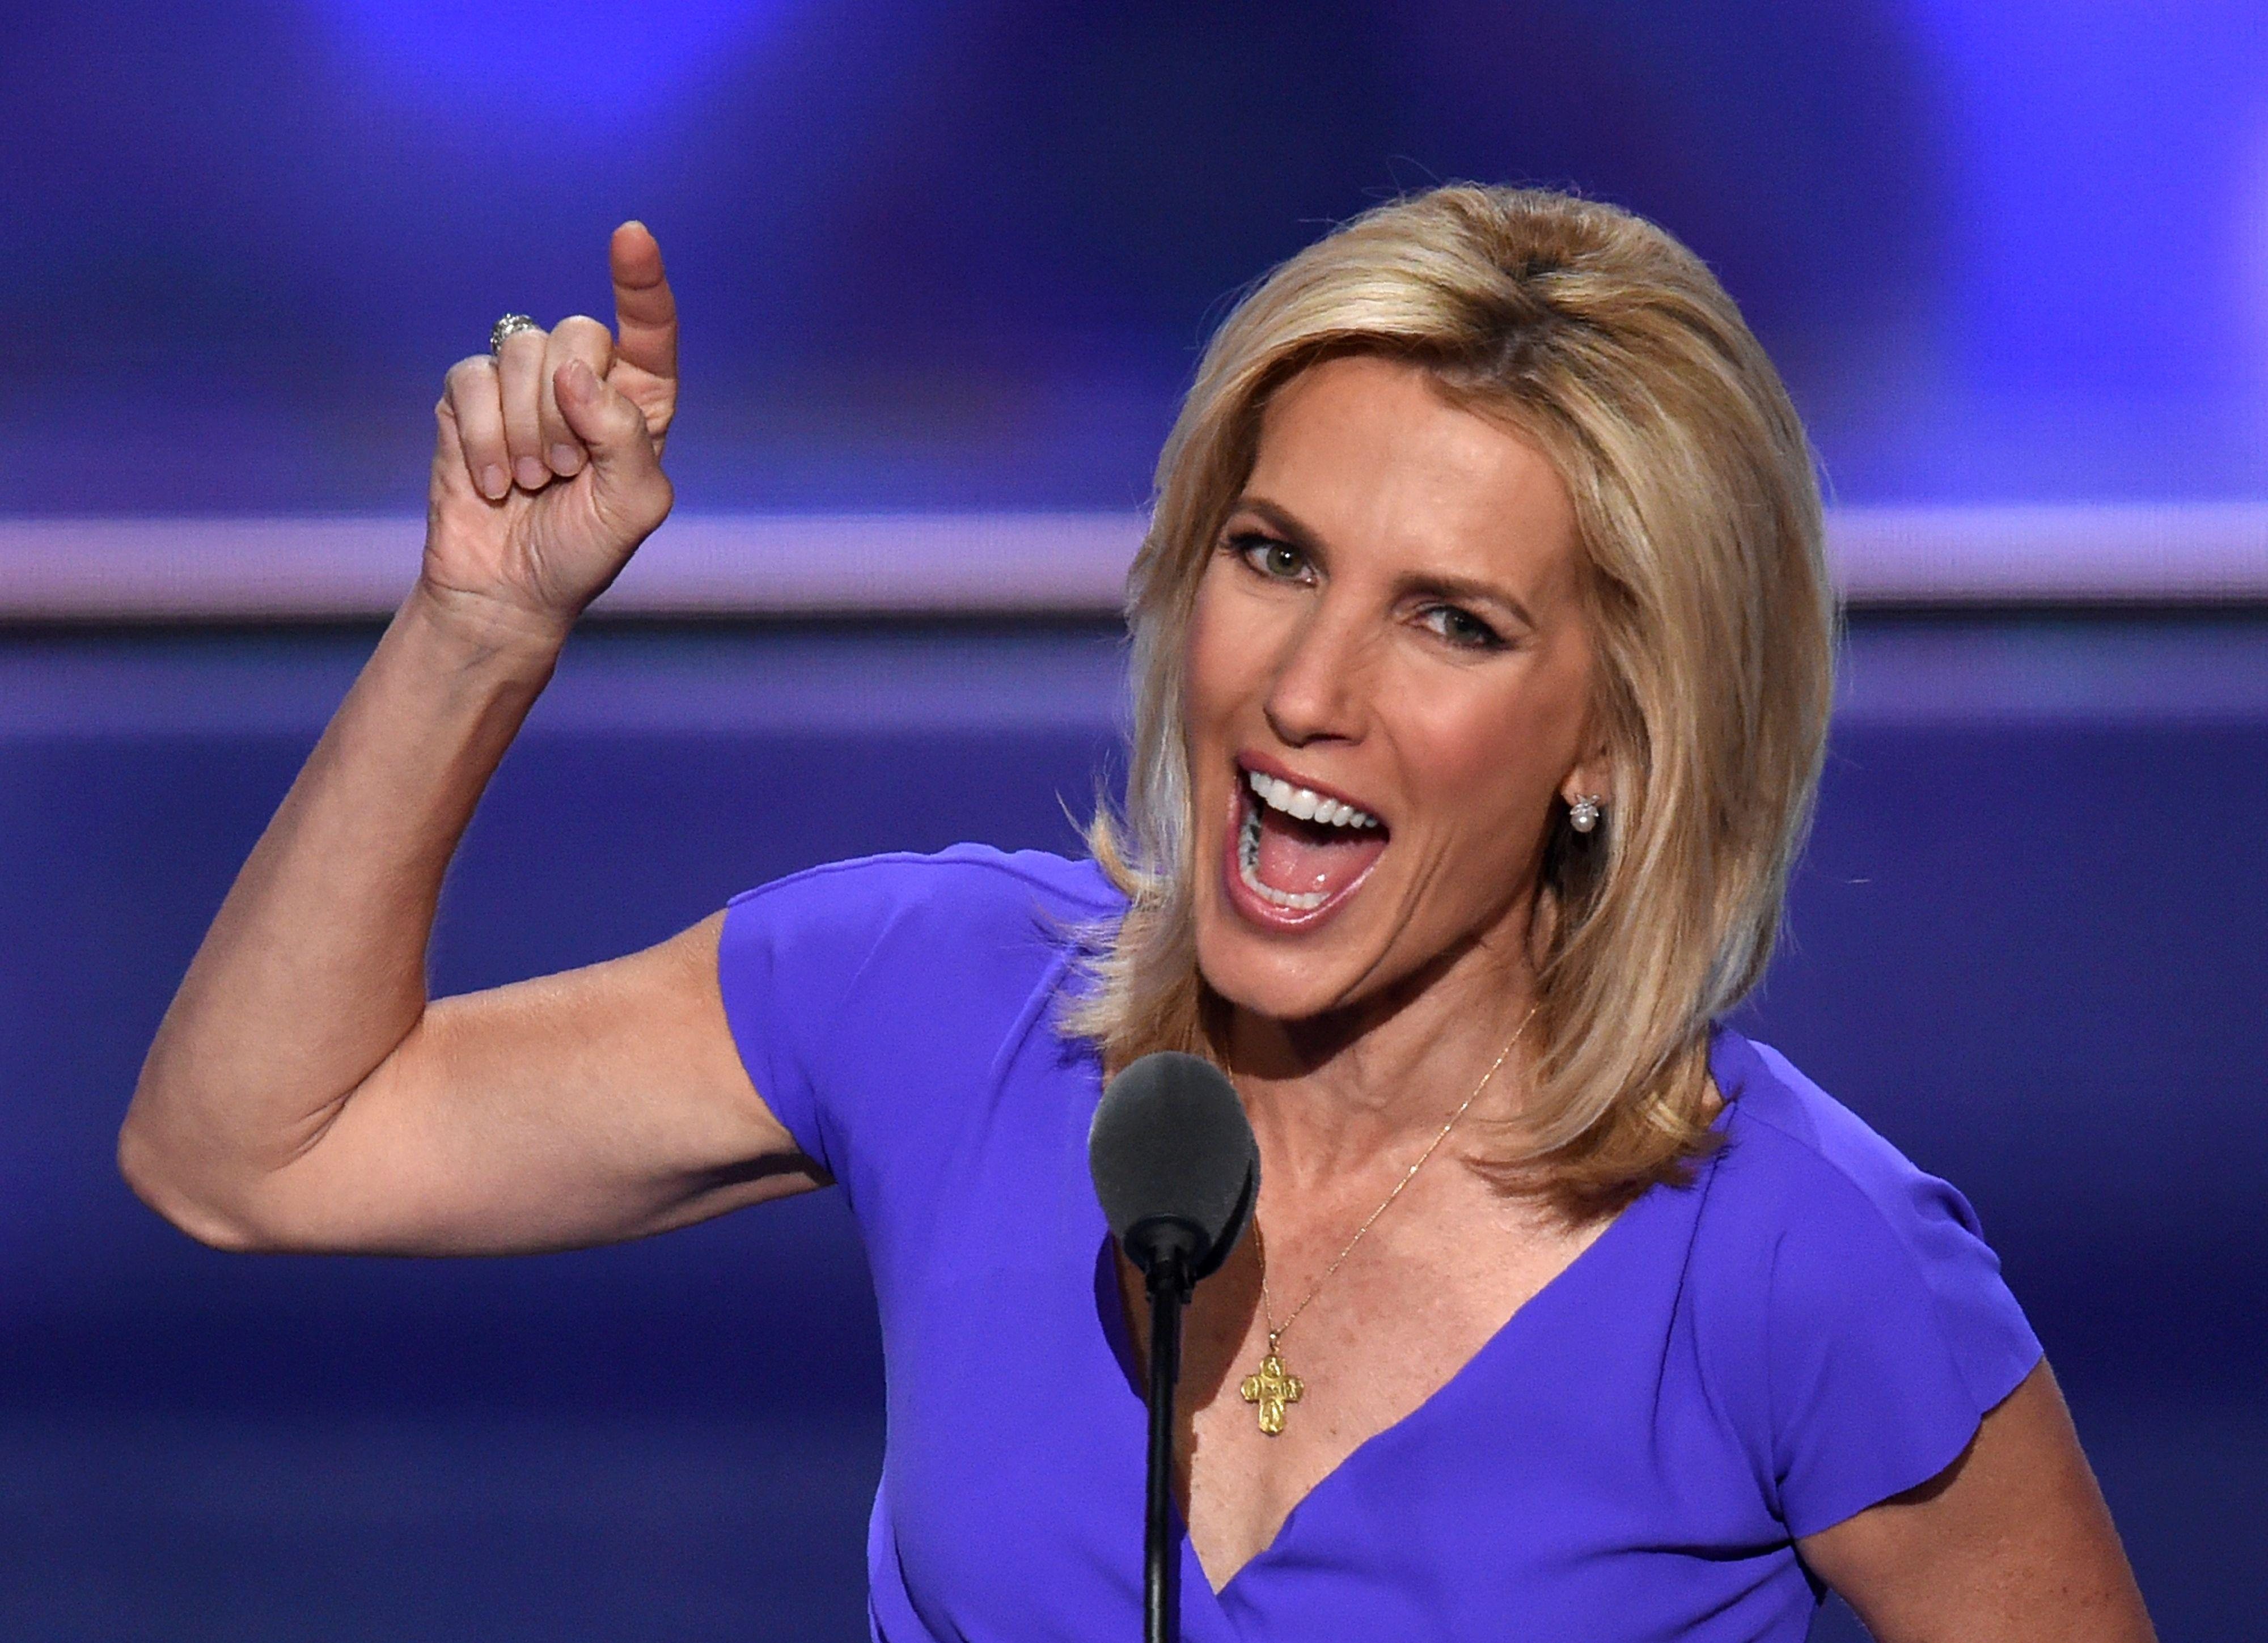 Ingraham smiles widely and points upward while standing behind a podium on a stage.